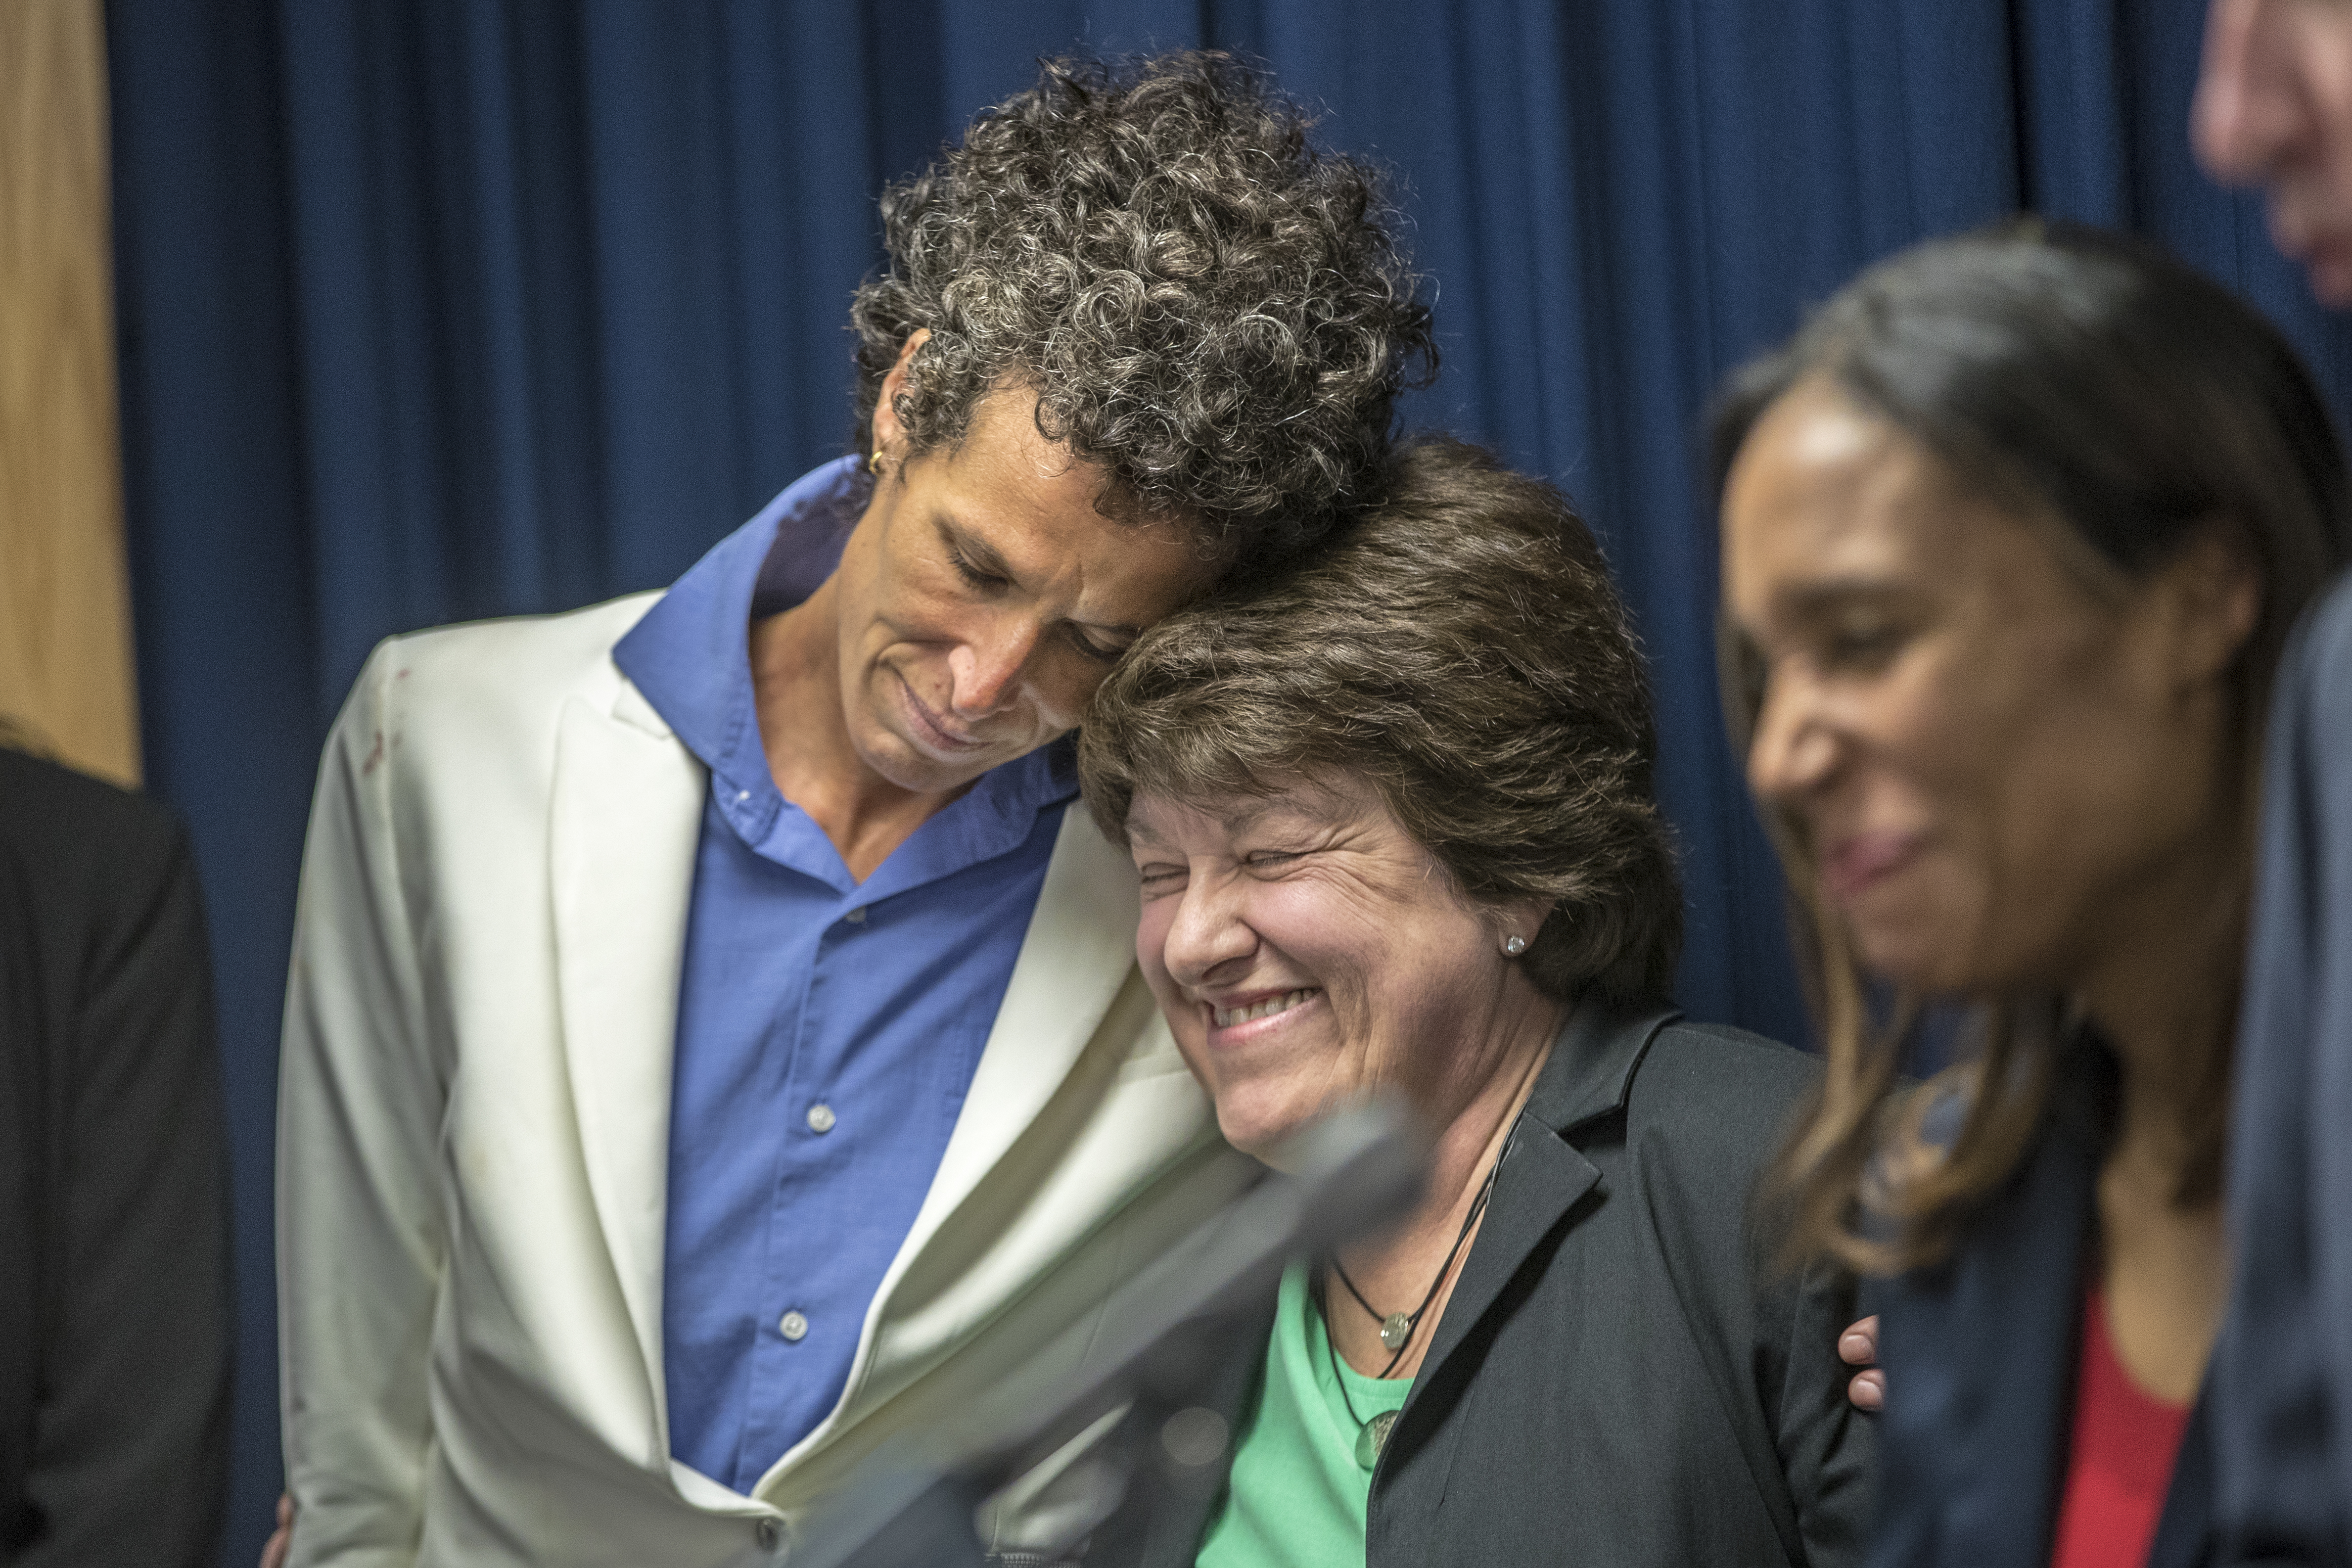 Andrea Constand, left, leans into her attorney Delores Troiani, right, during Montgomery County District Attorney Kevin Steele's press conference after the guilty verdict against Bll Cosby on three counts of sexual assualt on Thursday April 26, 2018.